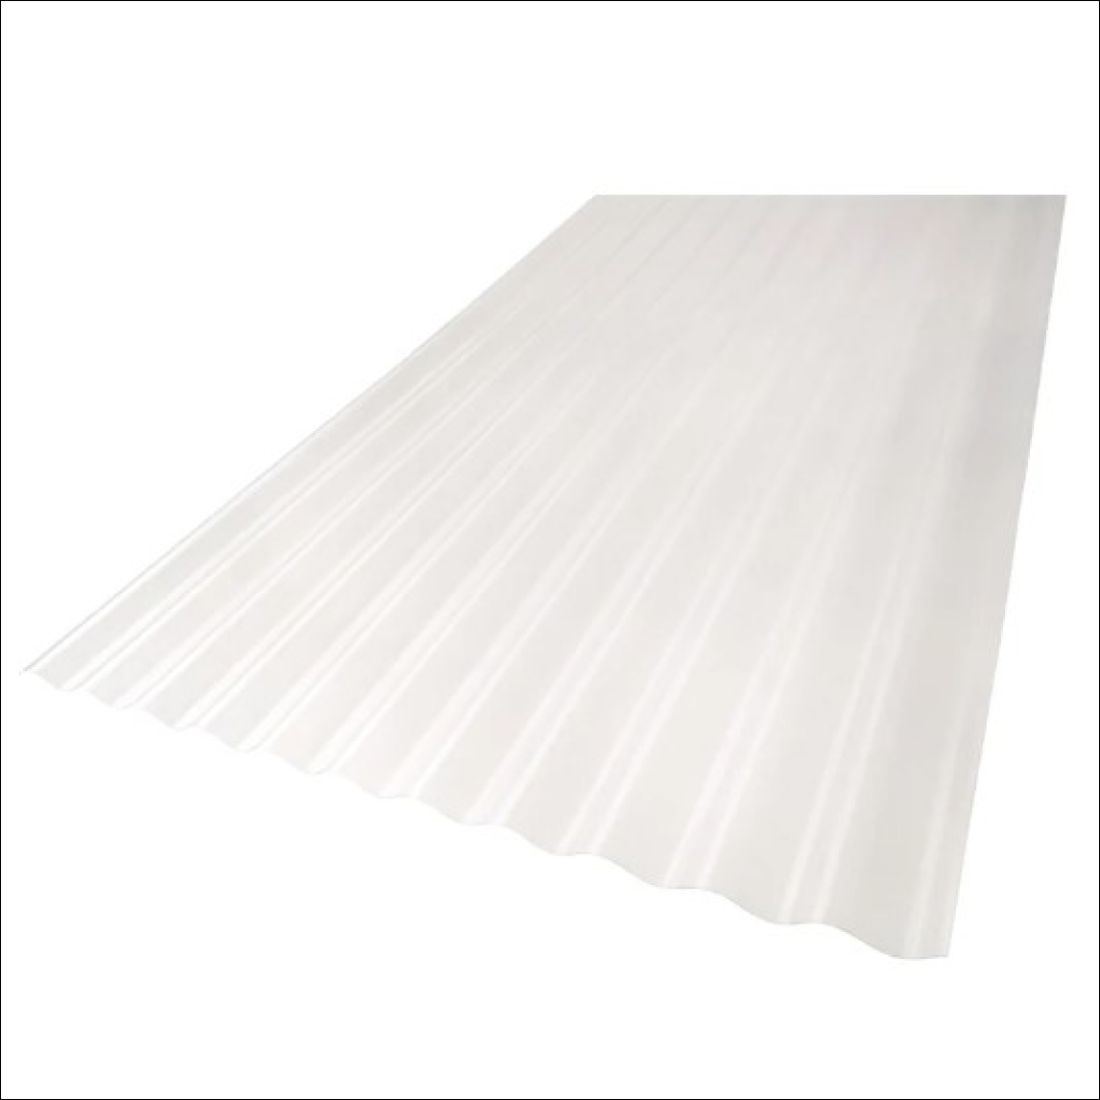 Corrugated  Clear 4200 x 860mm